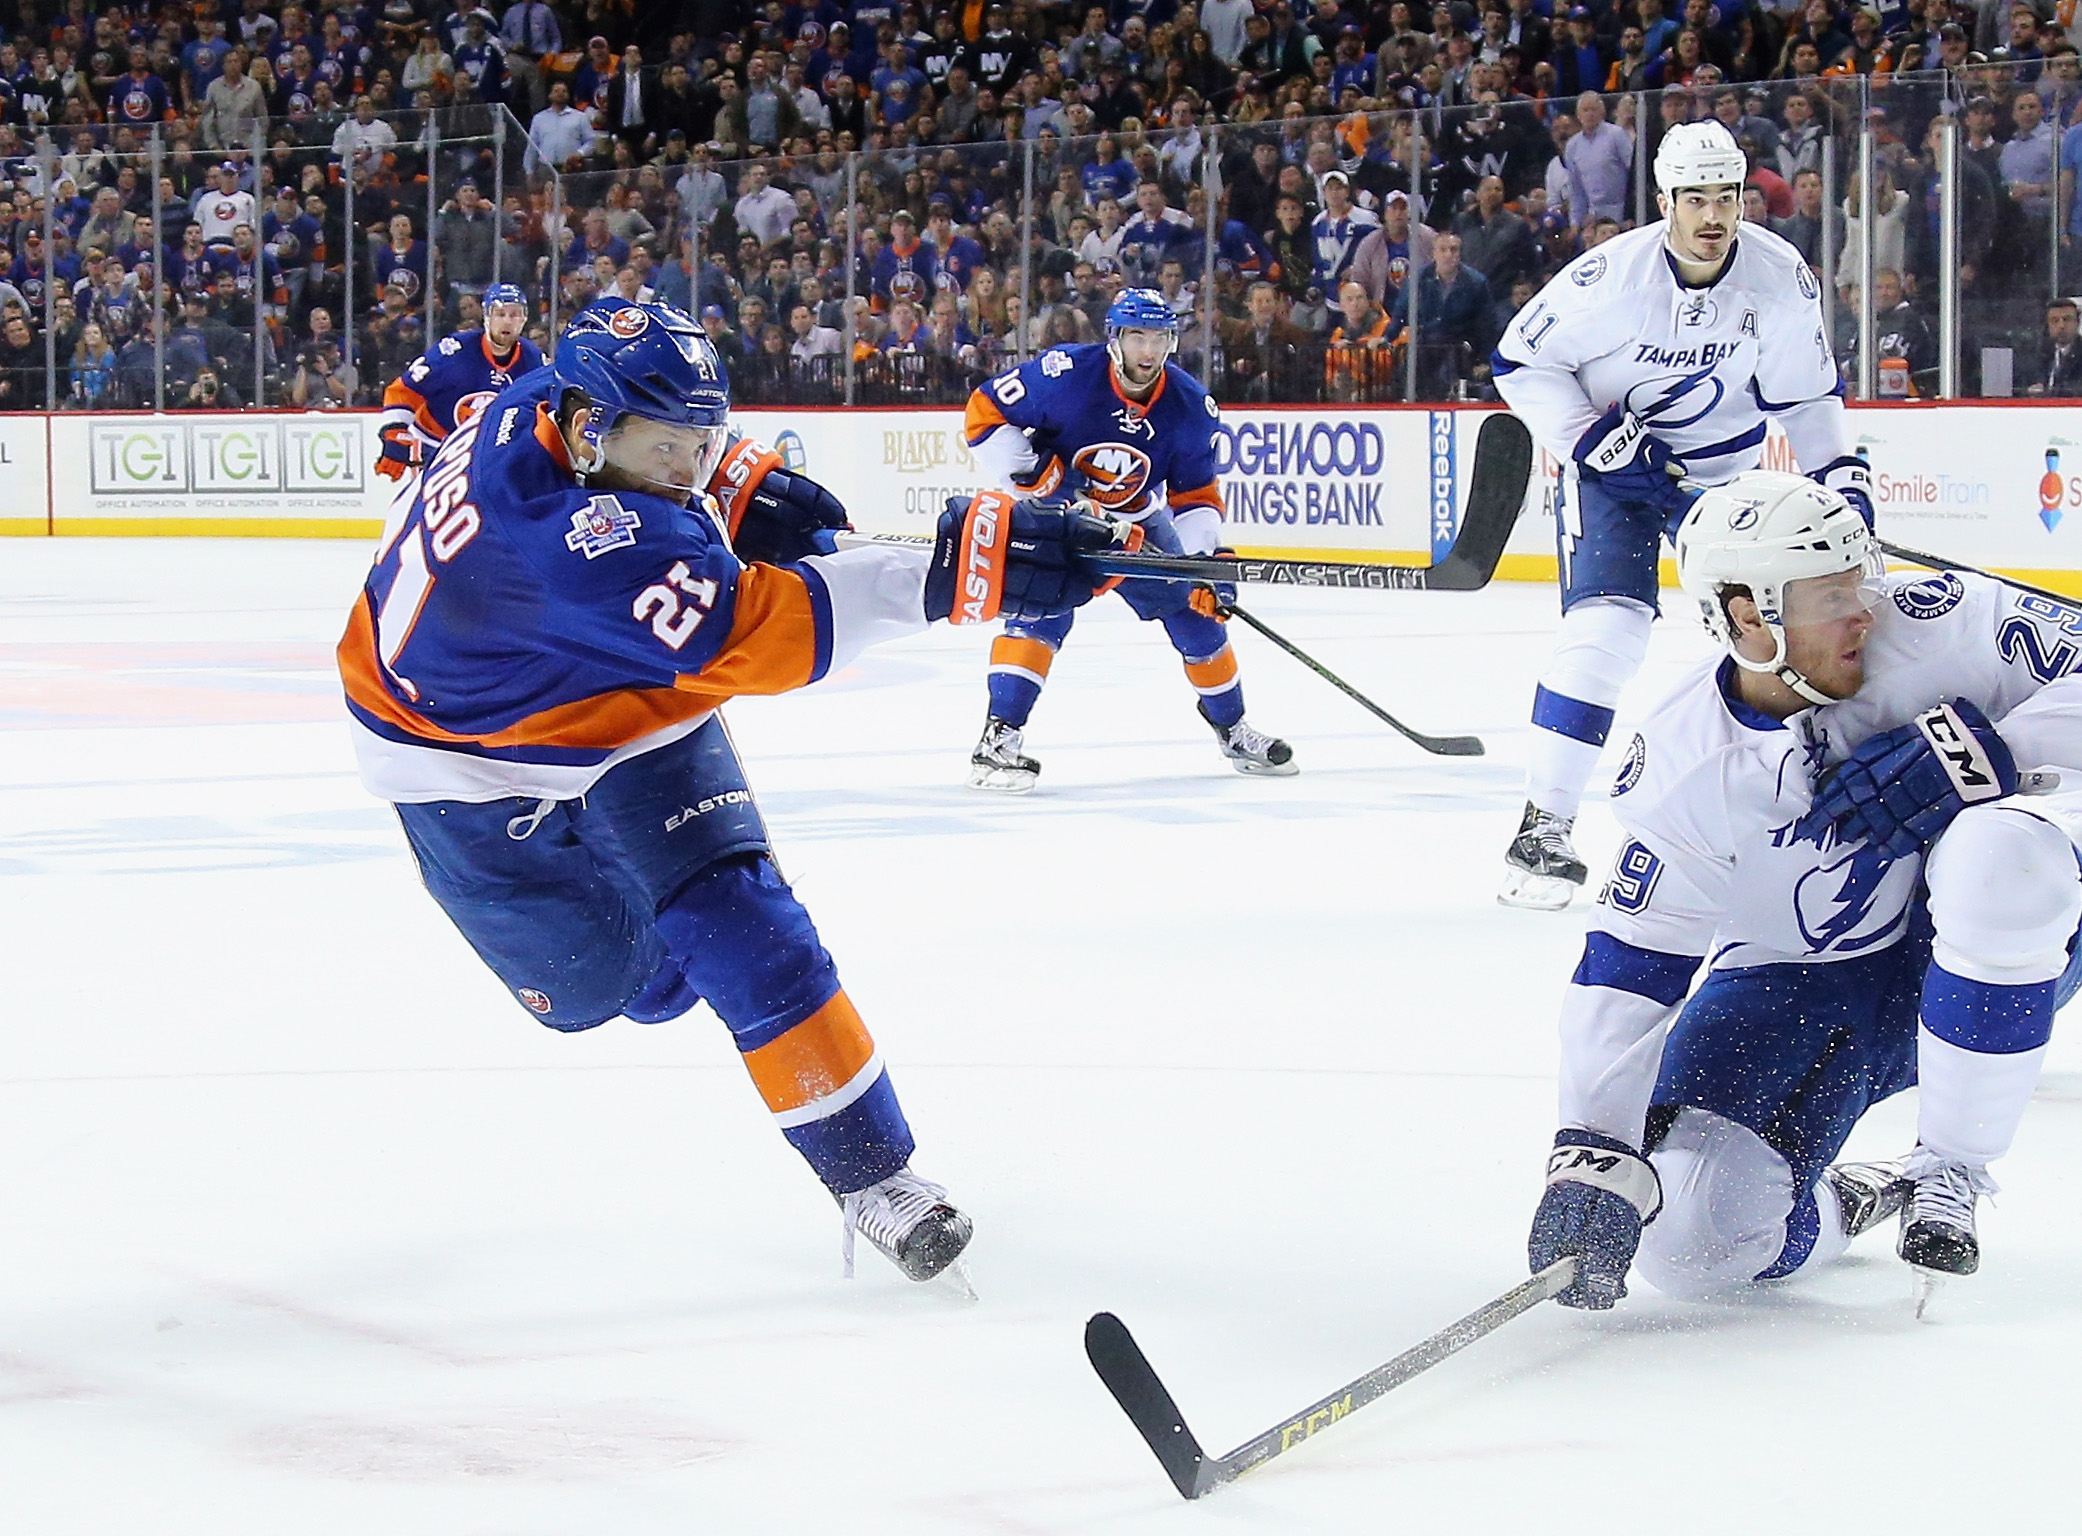 The signing of Kyle Okposo shows Buffalo is a destination, Tim Murray said.  (Photo by Bruce Bennett/Getty Images)